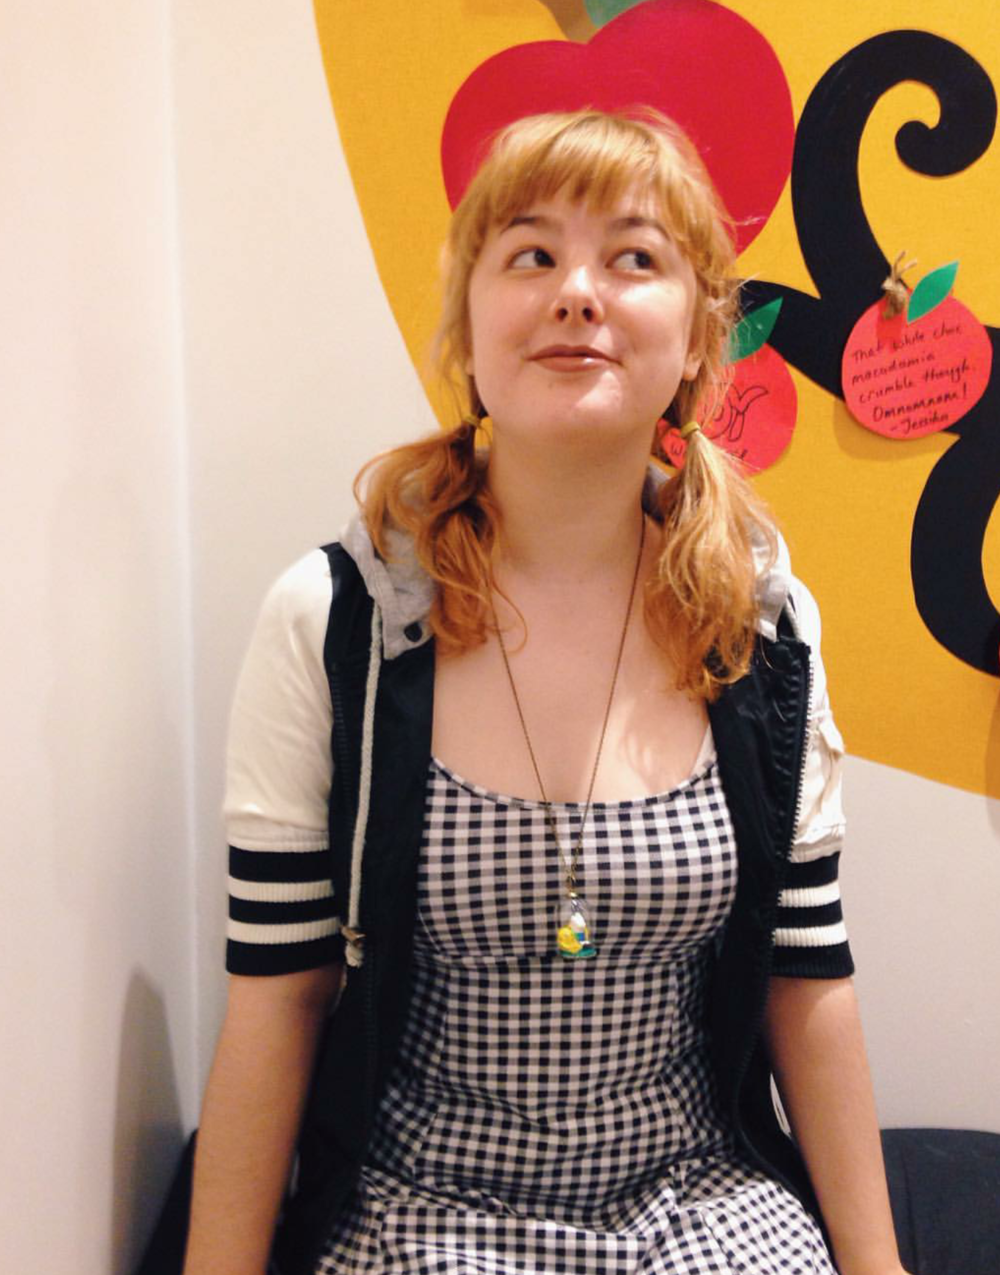 Forever adorable @littlepineneedle wearing her Finn and Jake Adventure Time Jar necklace